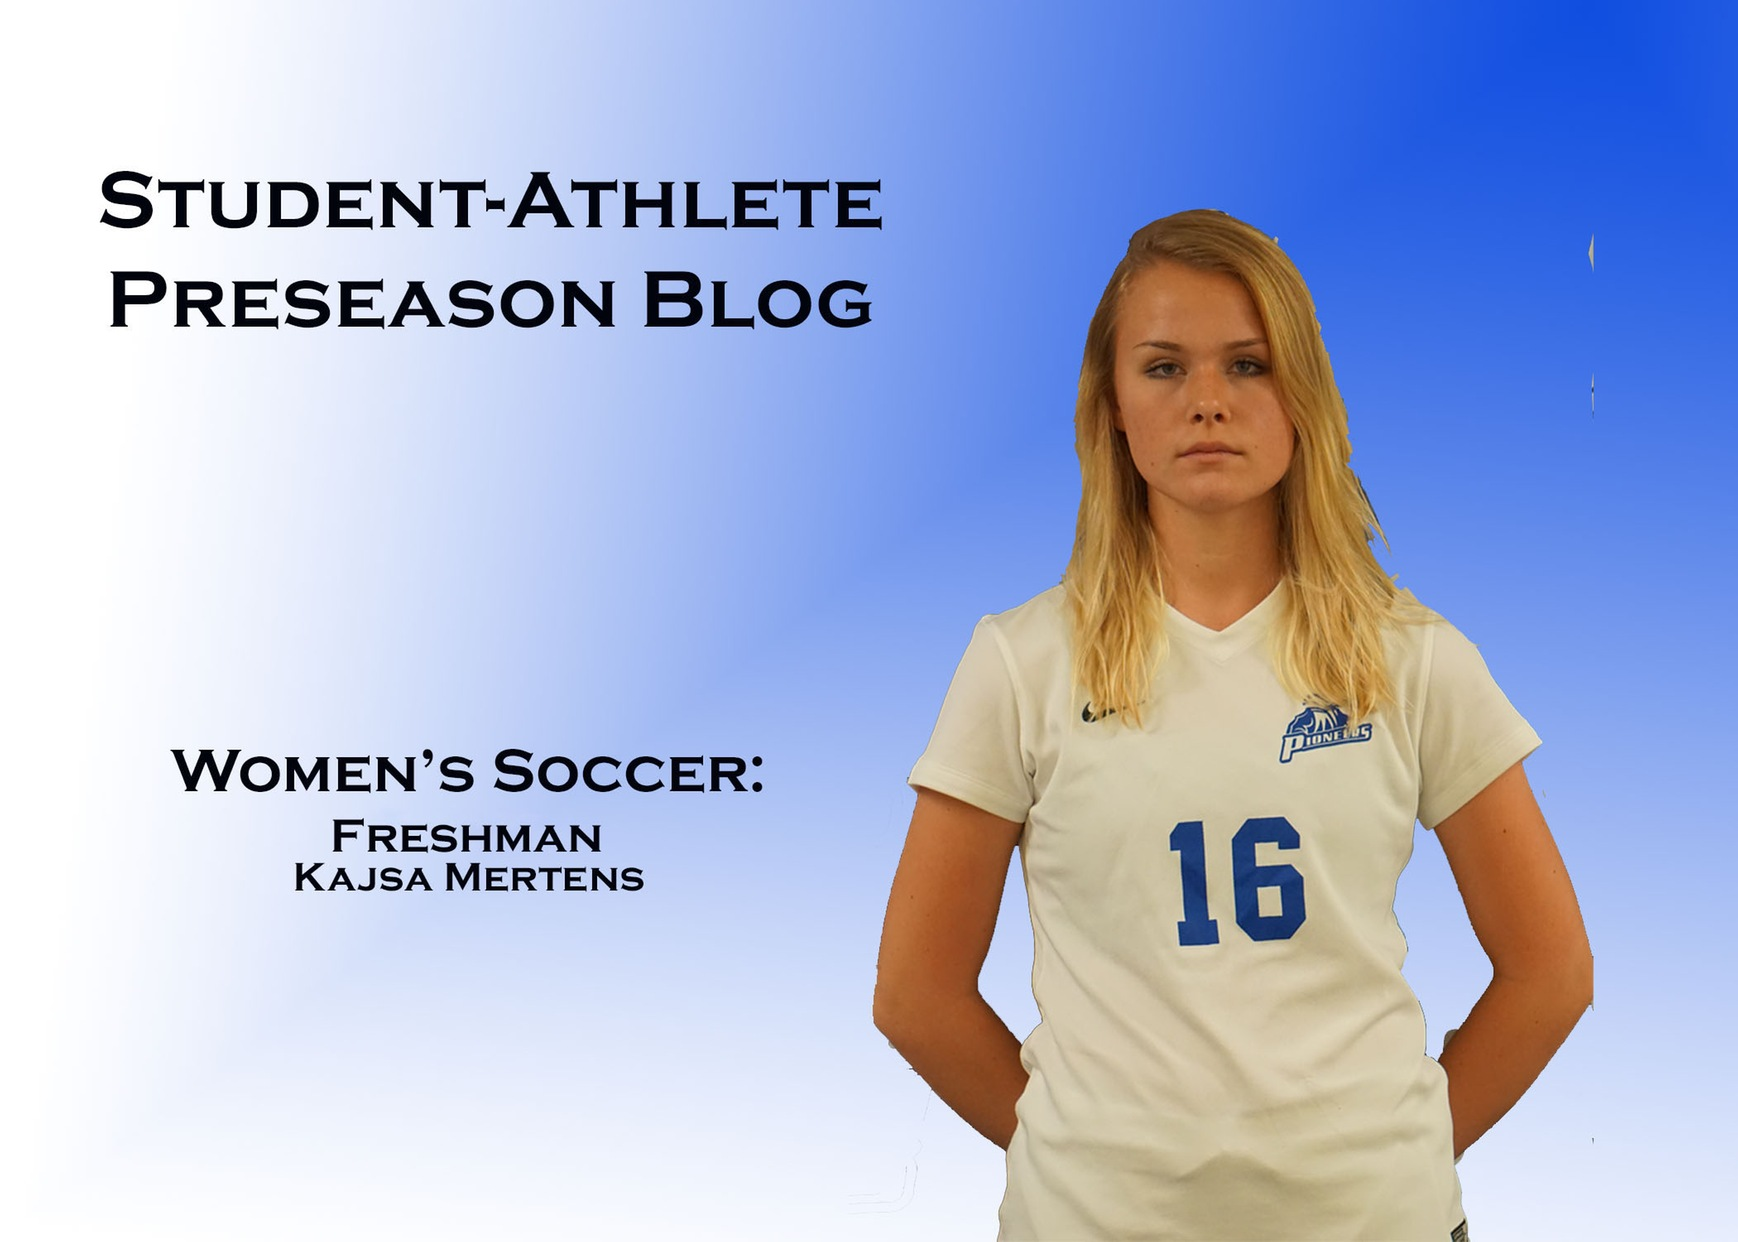 Day One: Student-Athlete Blog